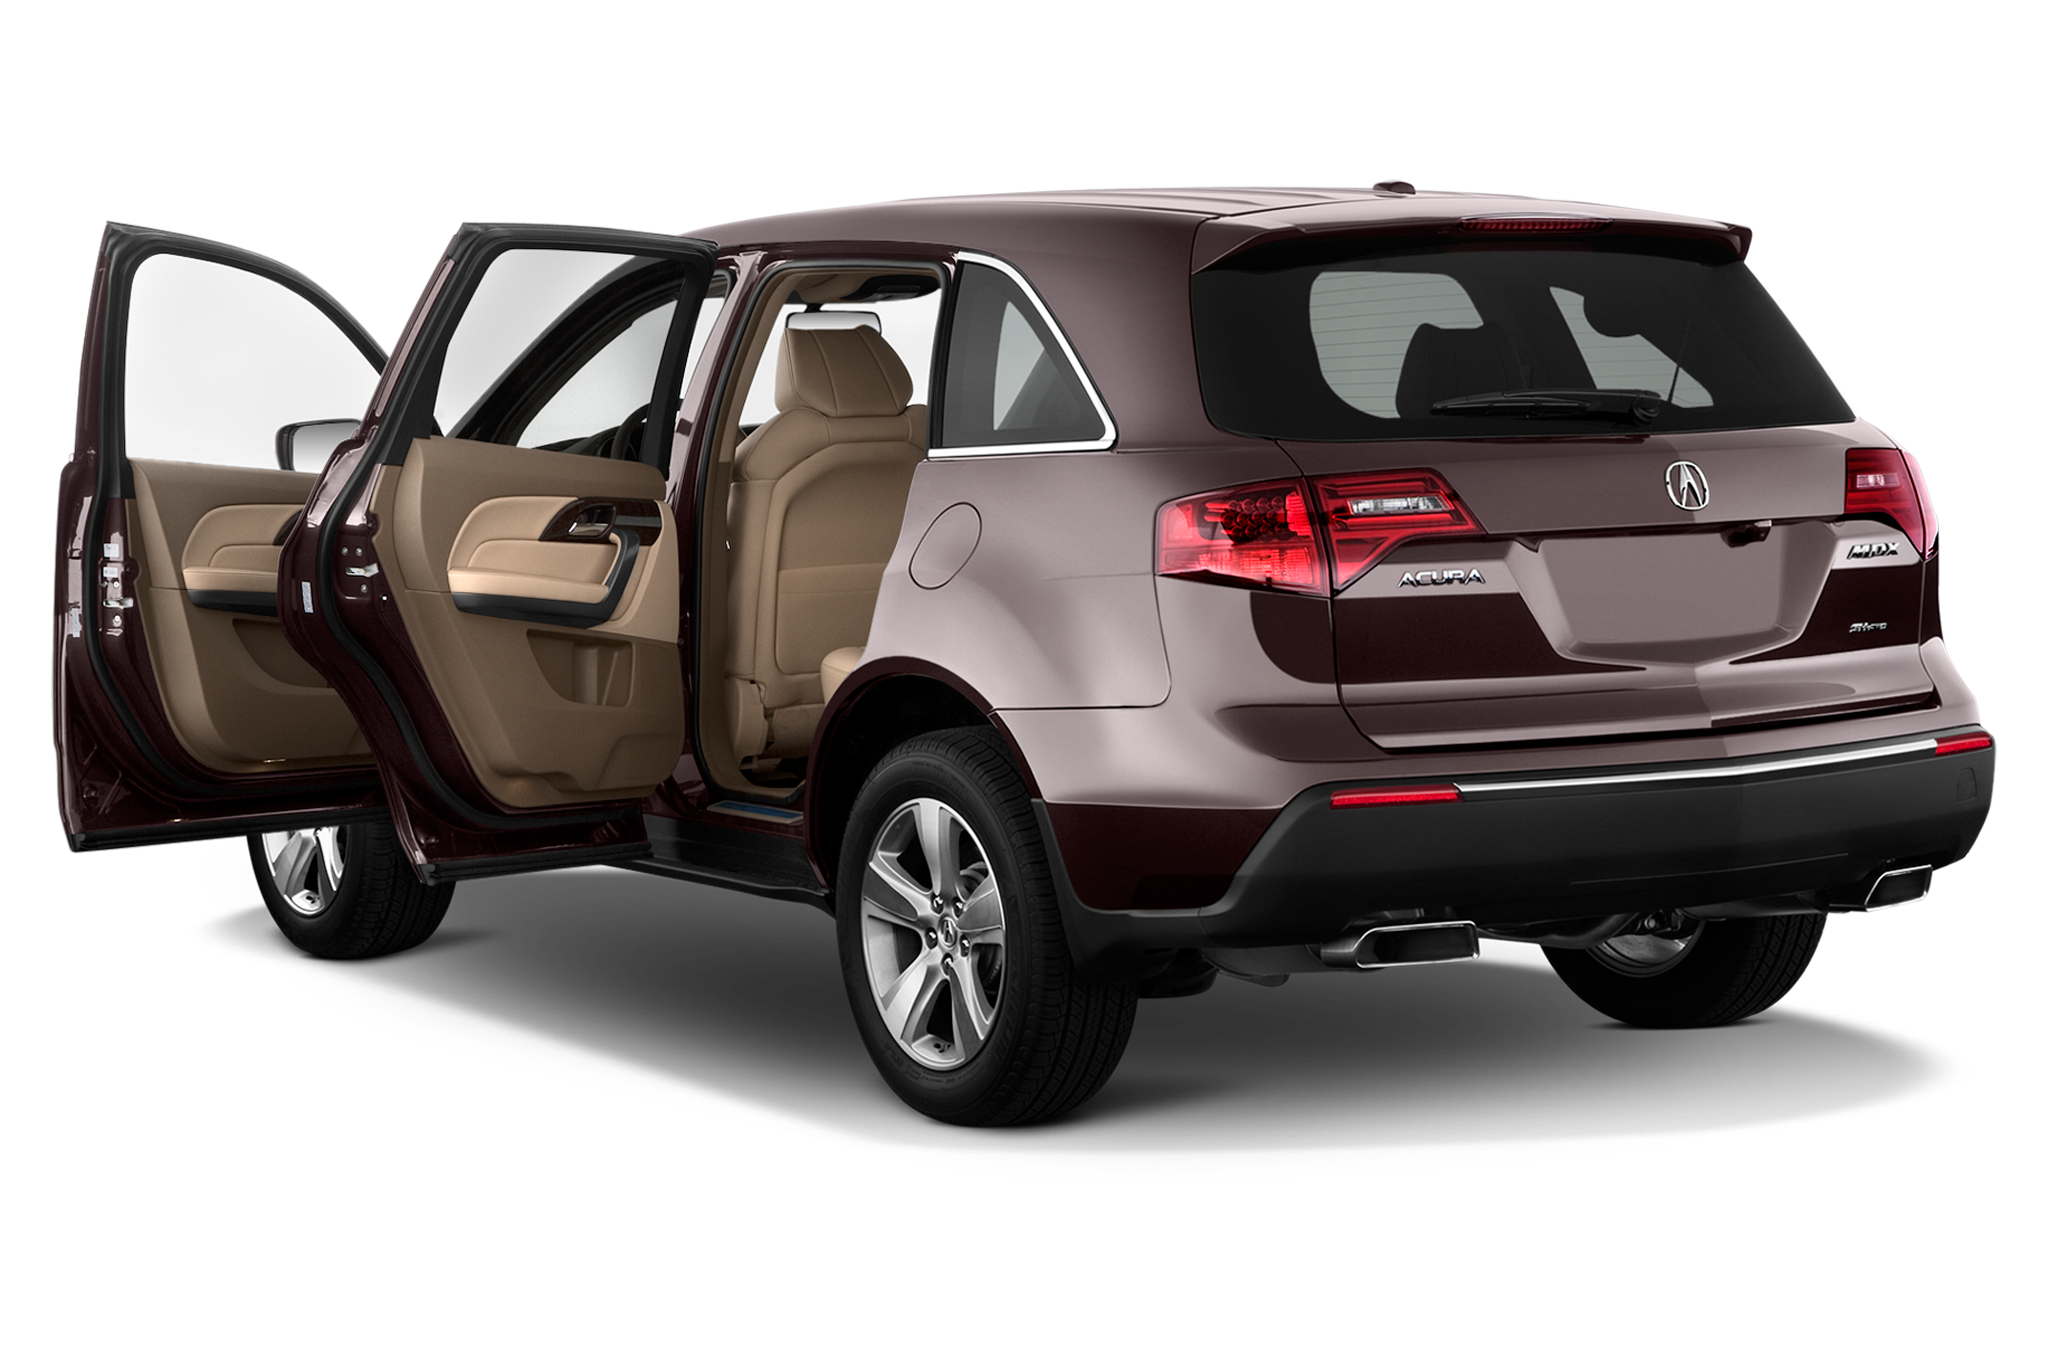 advance graystone package with l mdx packages entertainment interior acura and com technology pin